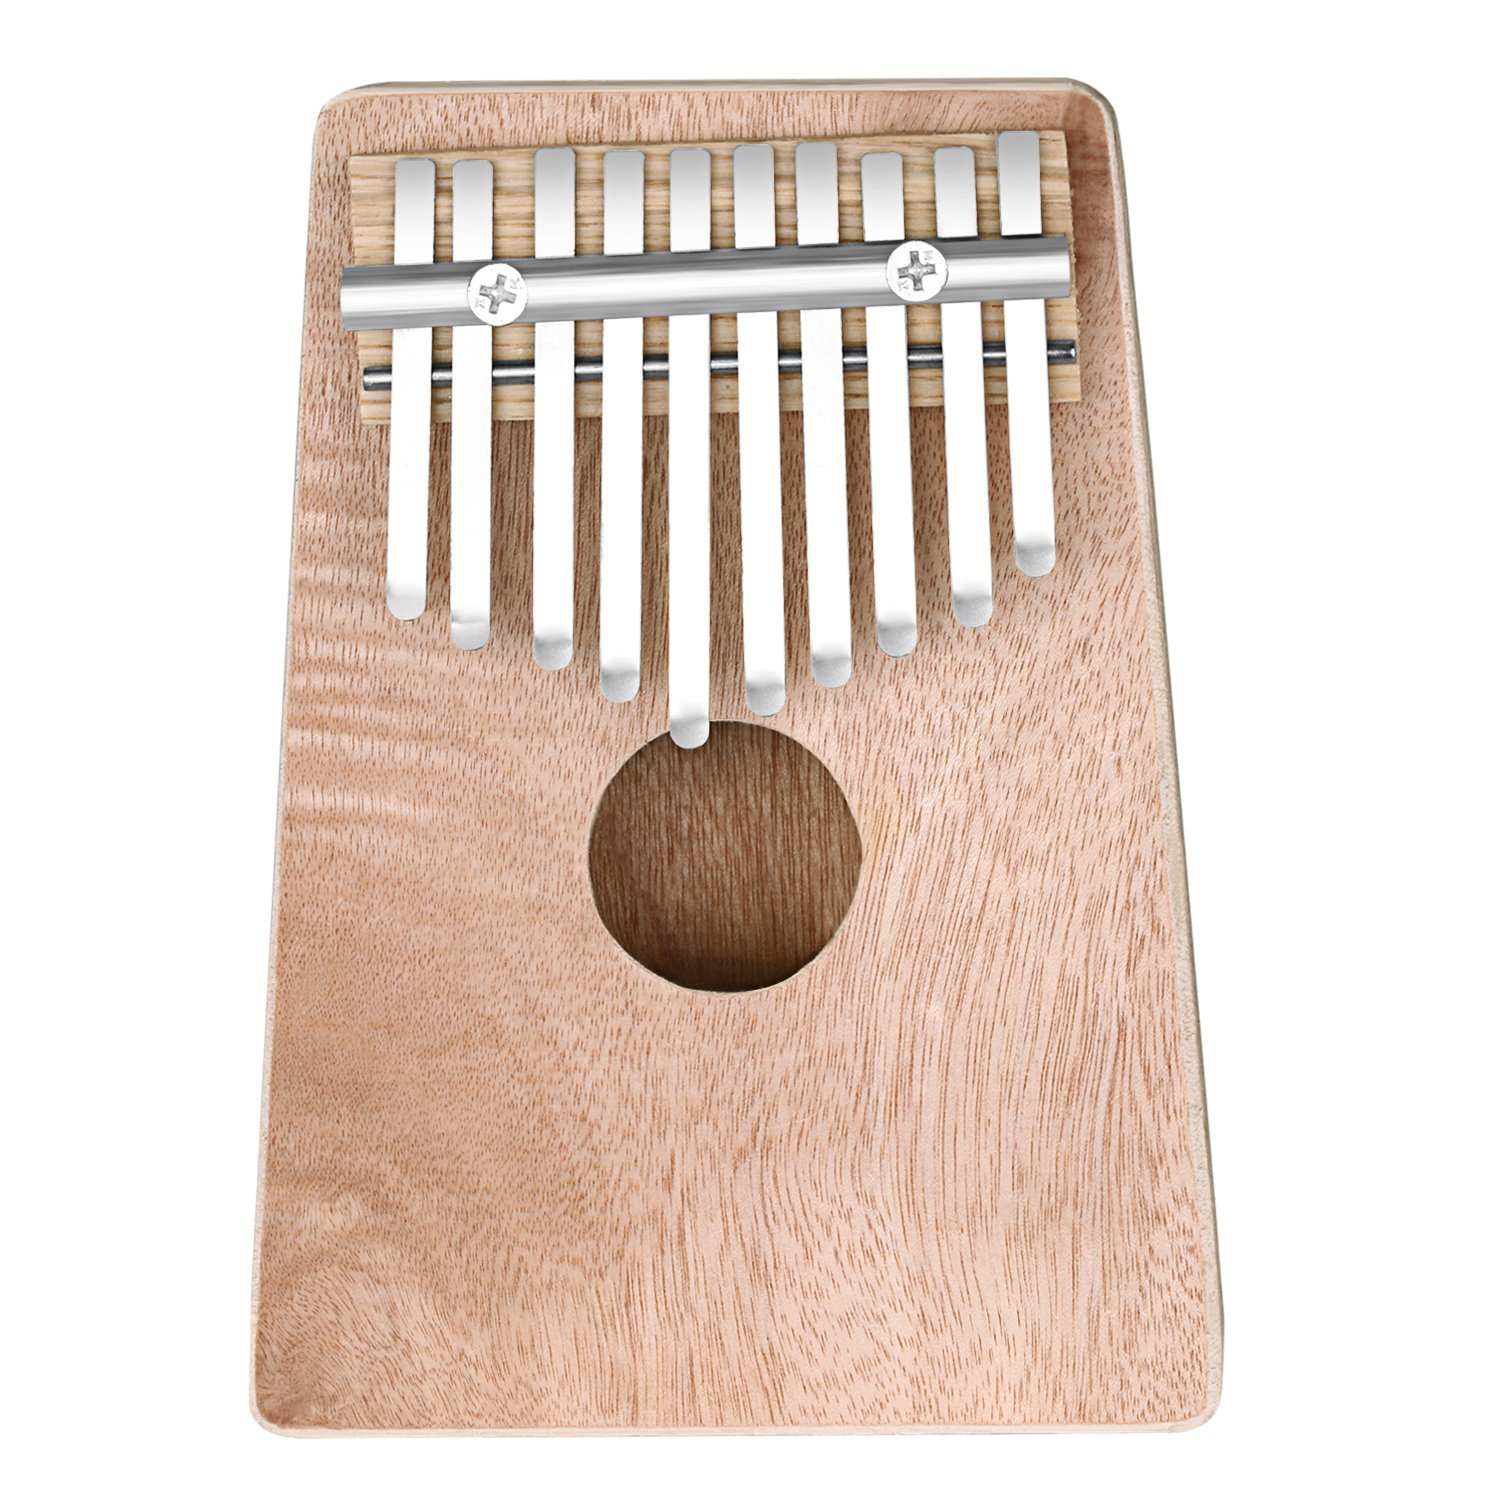 Neewer 10 Keys Hollow Pine Finger Thumb Piano Mbira, Portable 17x12.5x4 centimeters/6.7x 4.9x1.6 inches, Education Toy Musical Instrument for Music Lover (Wood Color) 40089021